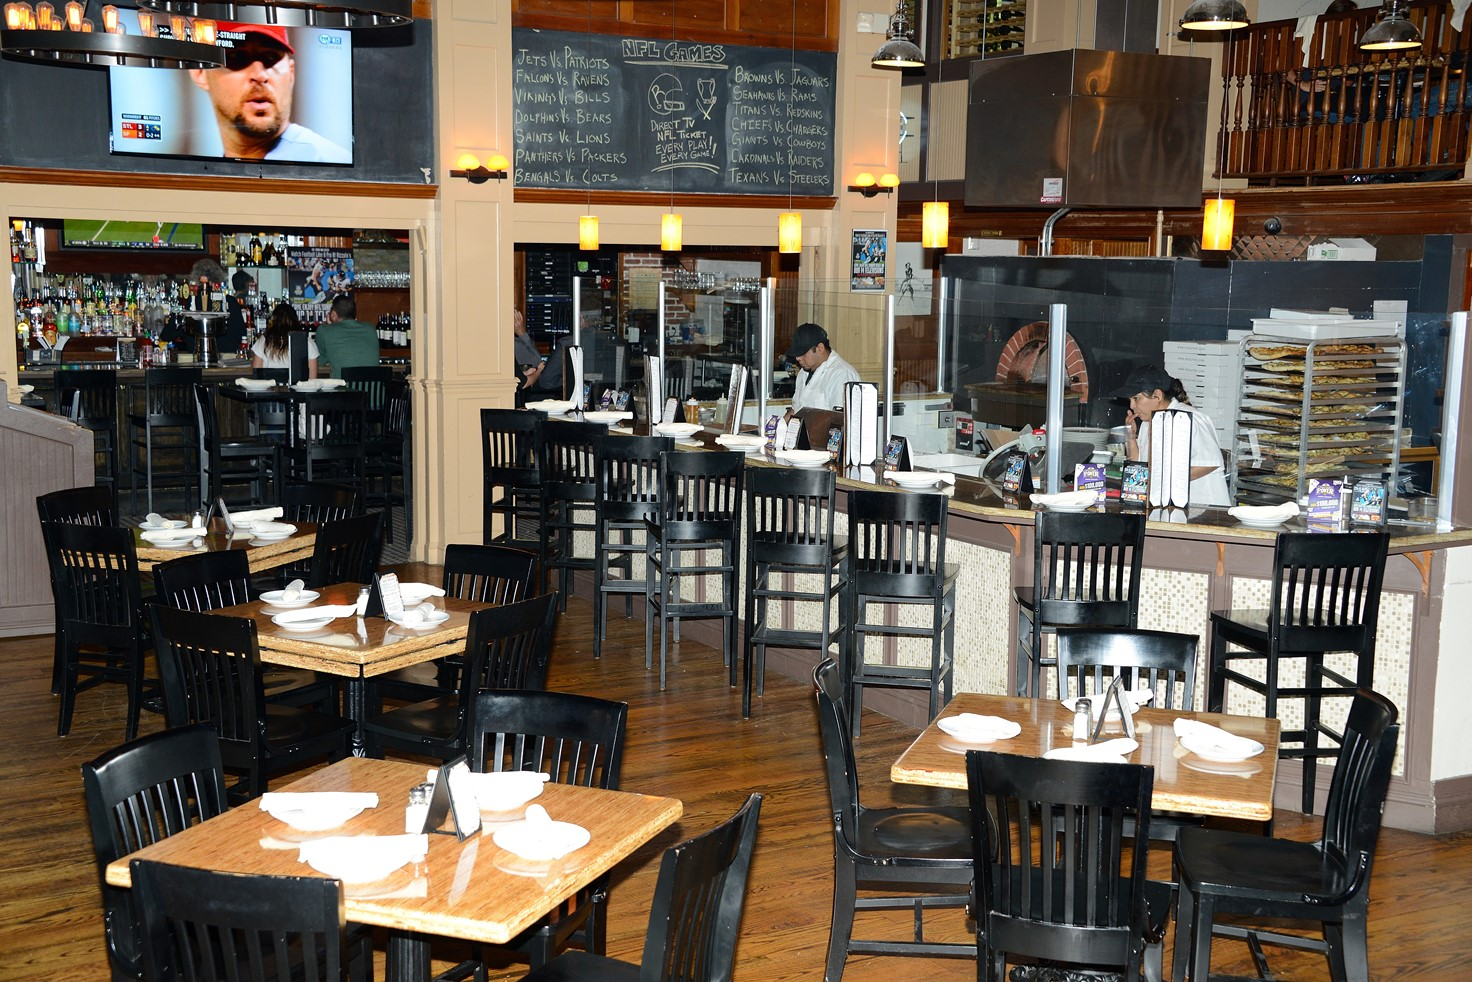 rizzuto's of stamford rebrands itself as a sports bar—and